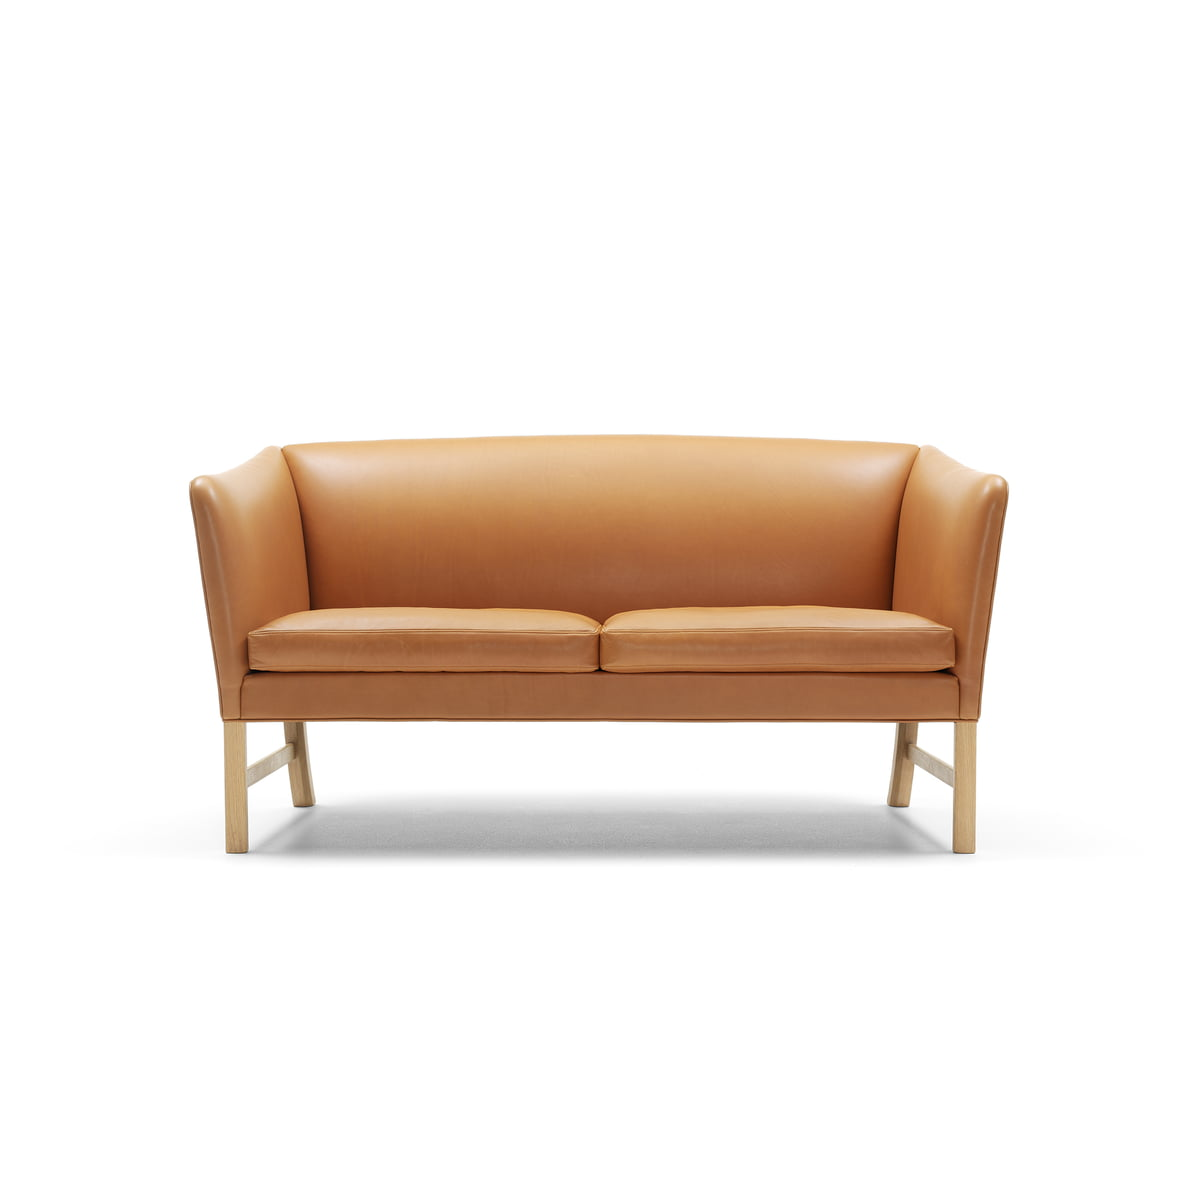 Bank Design Leer.Ow602 Sofa 2 Seater By Carl Hansen In The Shop